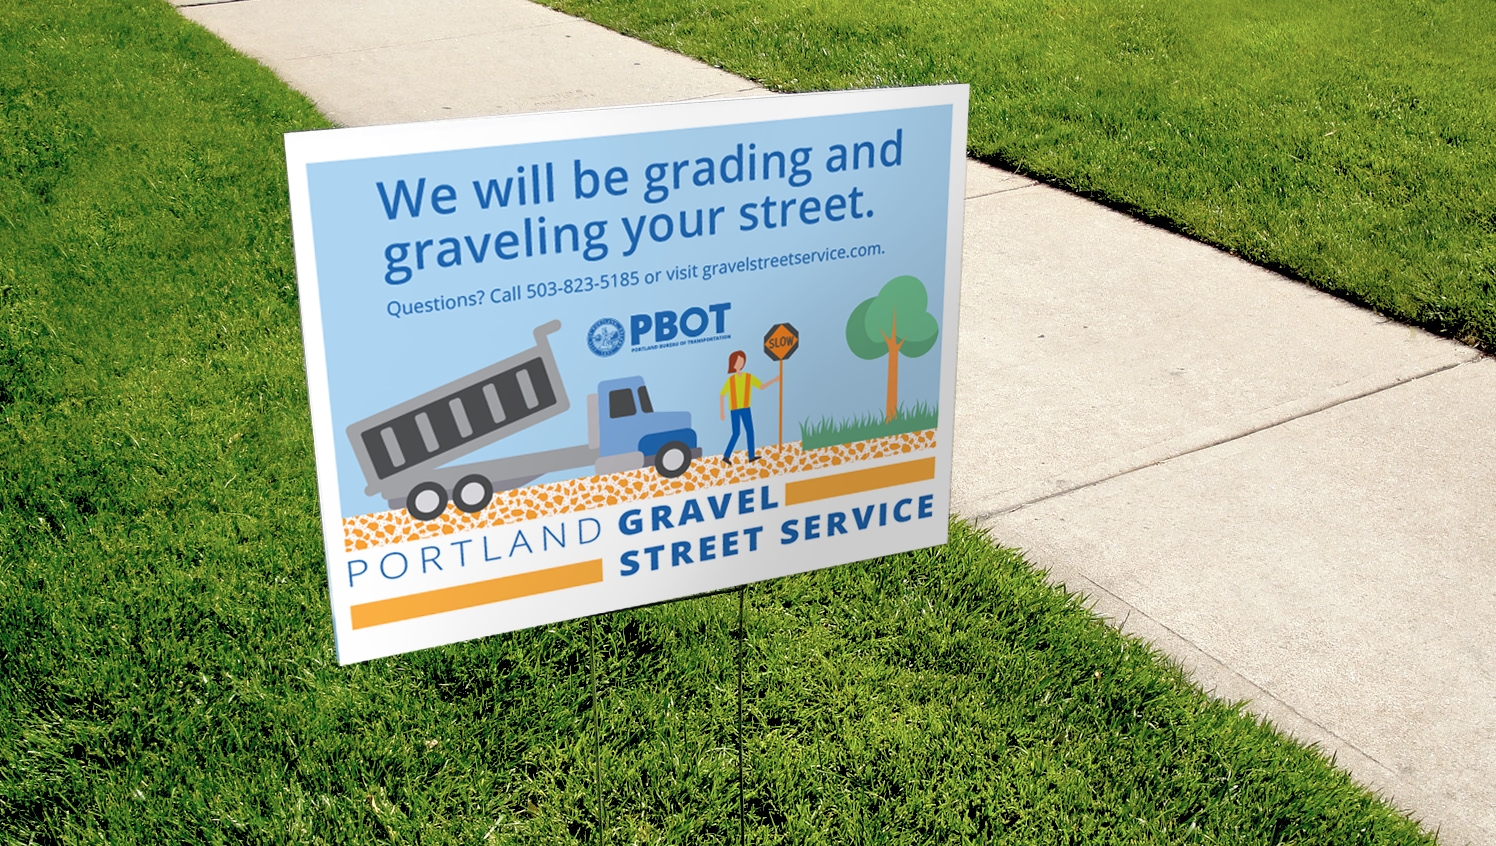 PBOT_Gravel_Streets_yard_sign.png